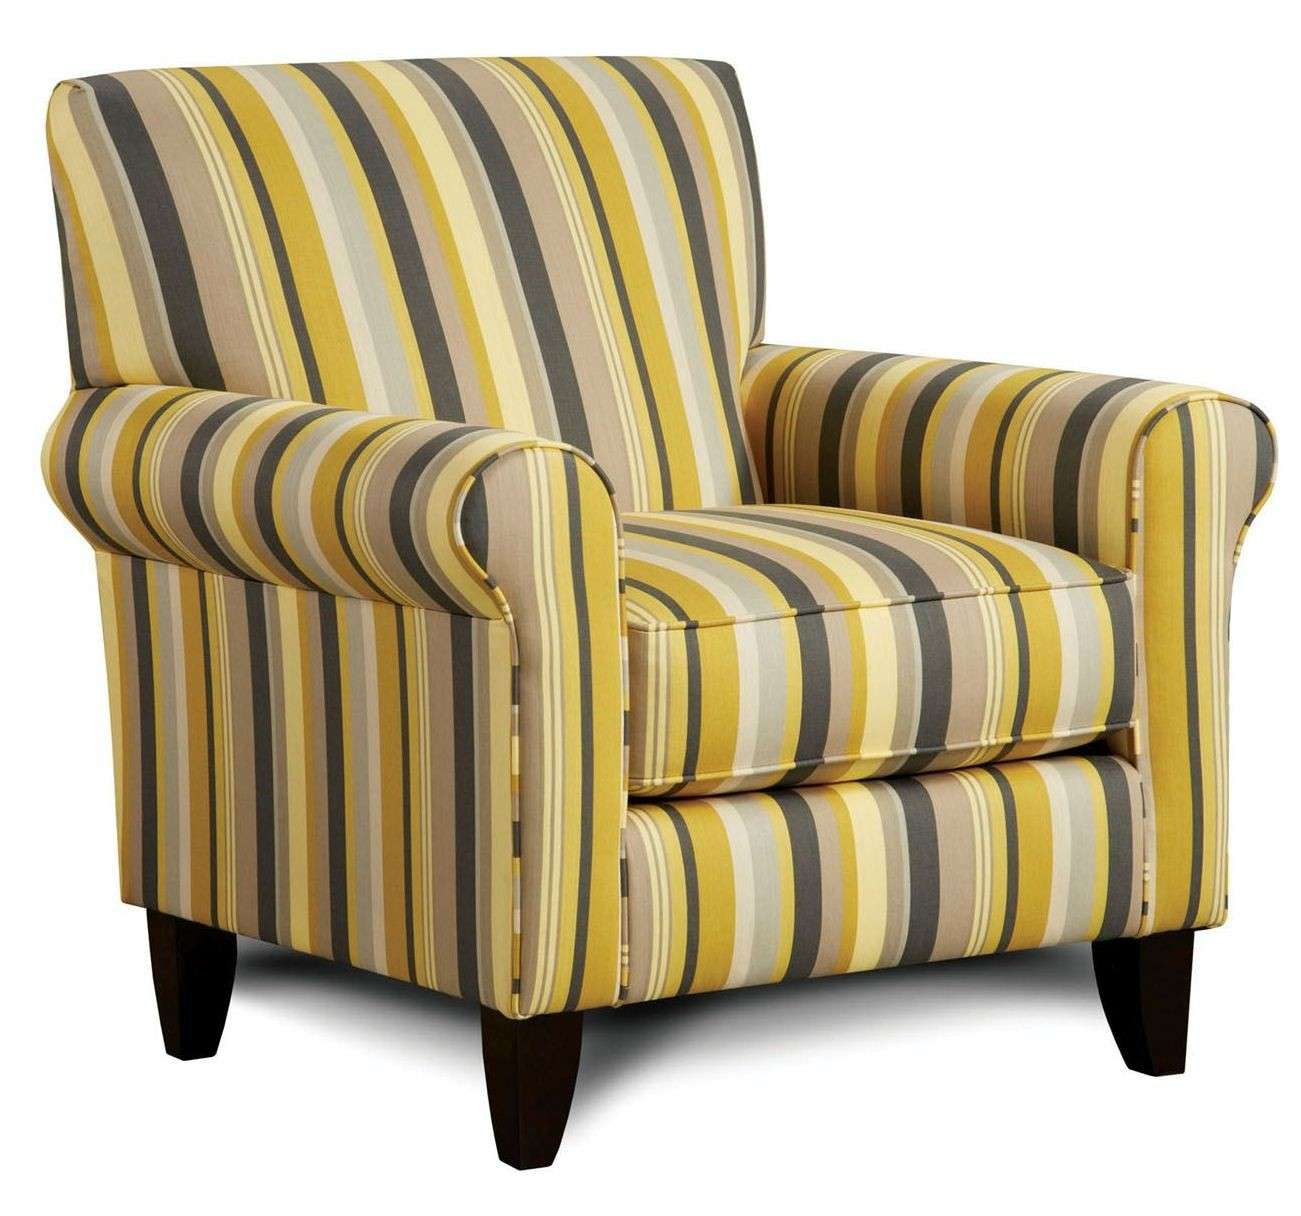 Fitzgerald Striped Pattern Chair From Furniture Of America Sm8490 Ch Eg Coleman Furniture